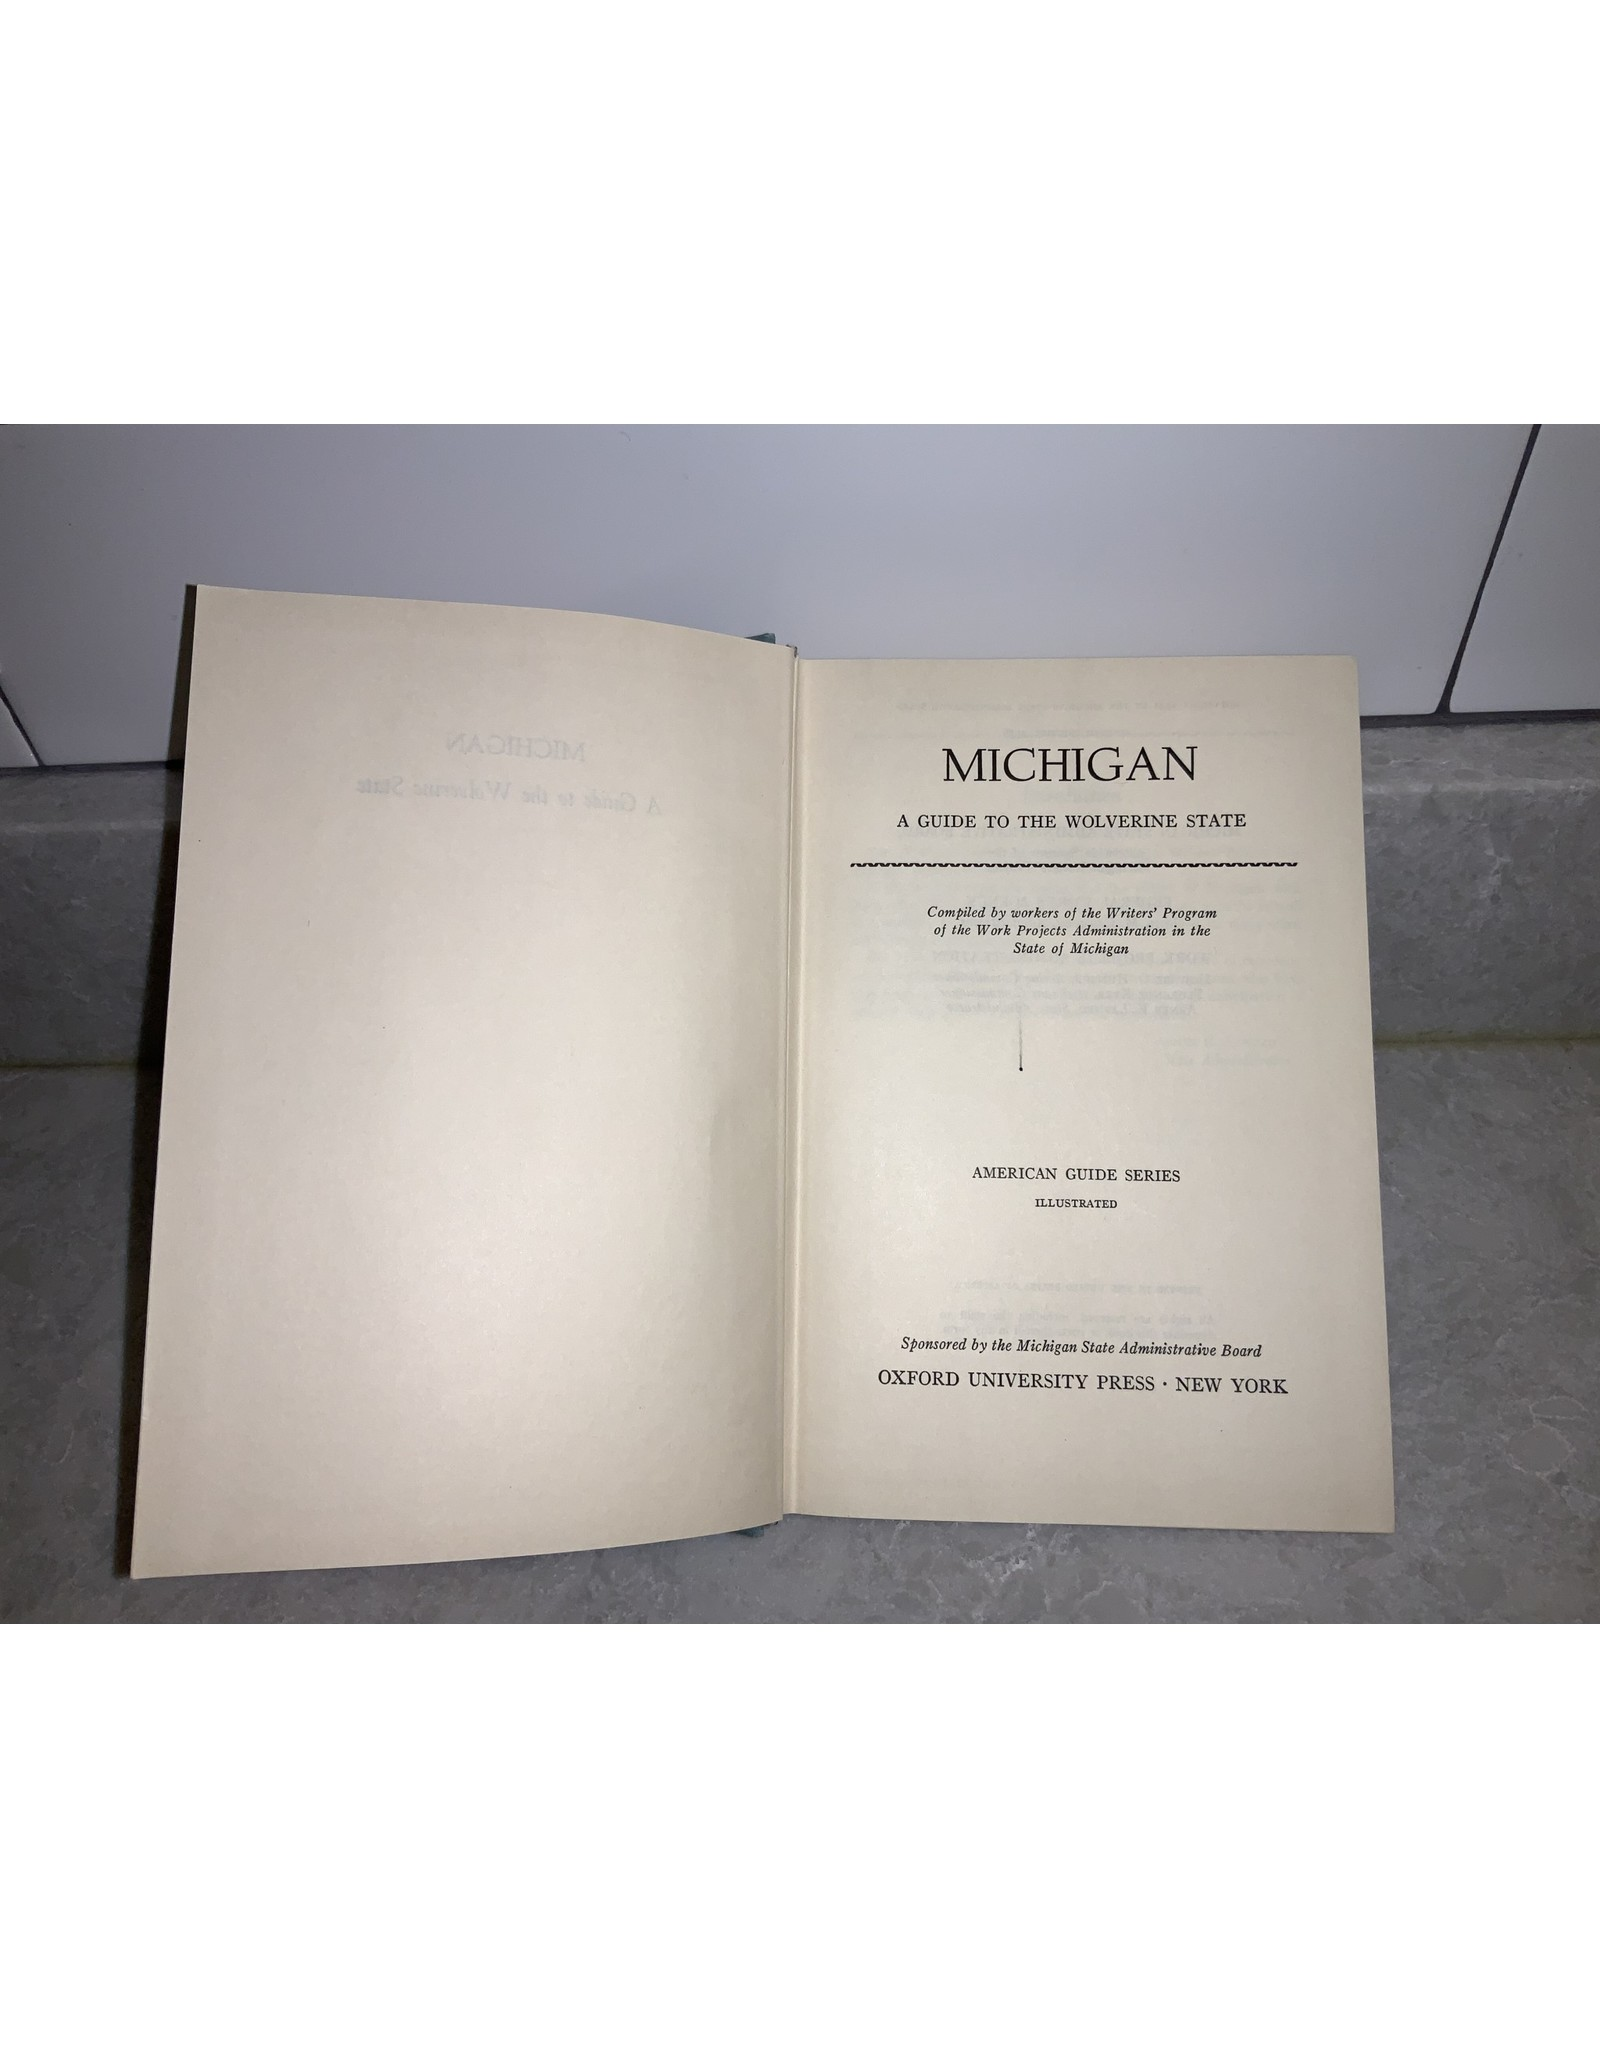 SPV Michigan: A Guide To The Wolverine State , Oxford University Press~New York